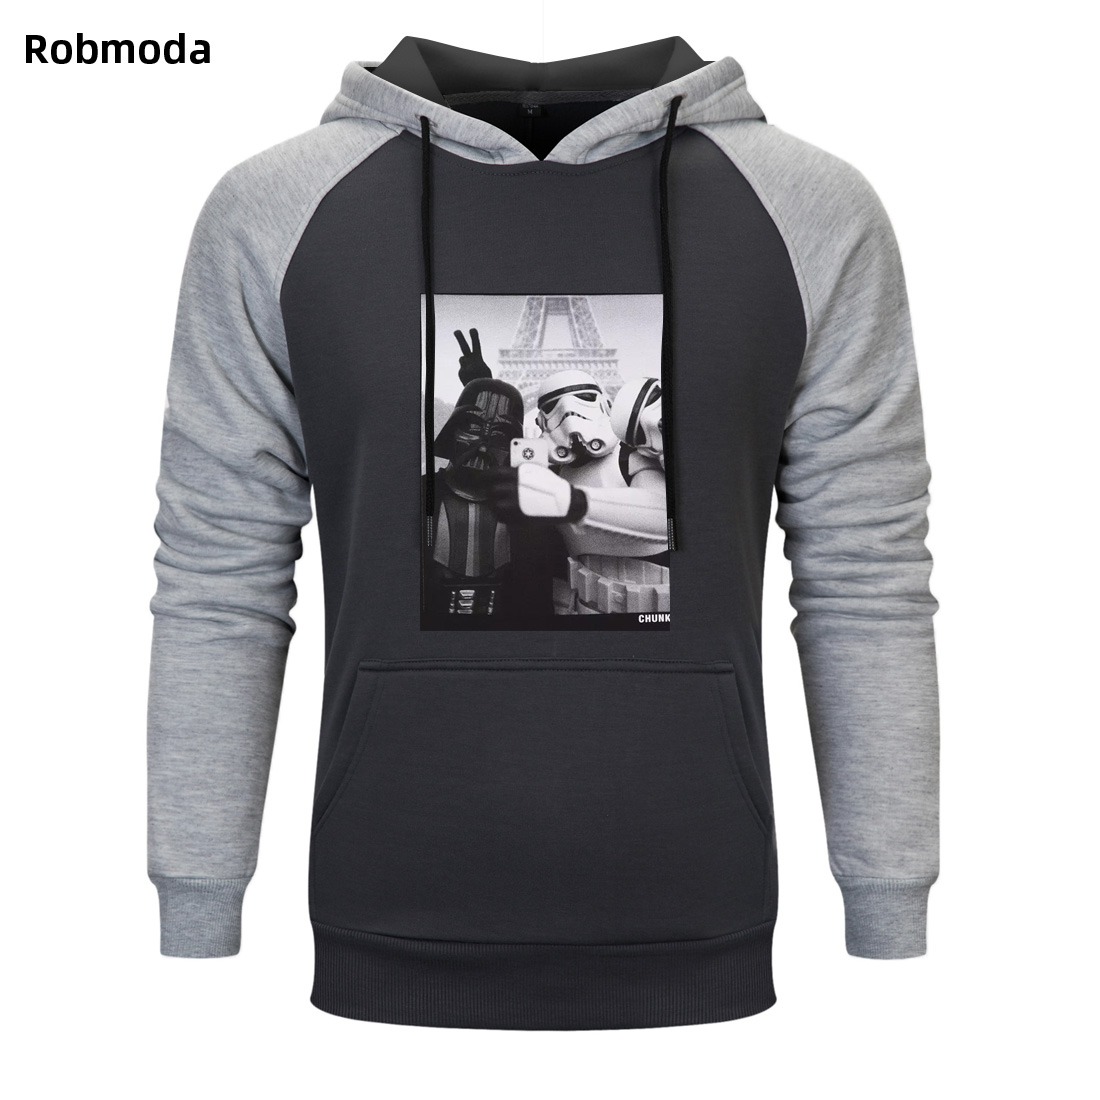 Spring Autumn Hoodies For Men 2019 New Casual Long Sleeve Rgalan Sweatshirt STAR WARS Harajuku Pullovers Hoody Kpop Sweatshirts in Hoodies amp Sweatshirts from Men 39 s Clothing